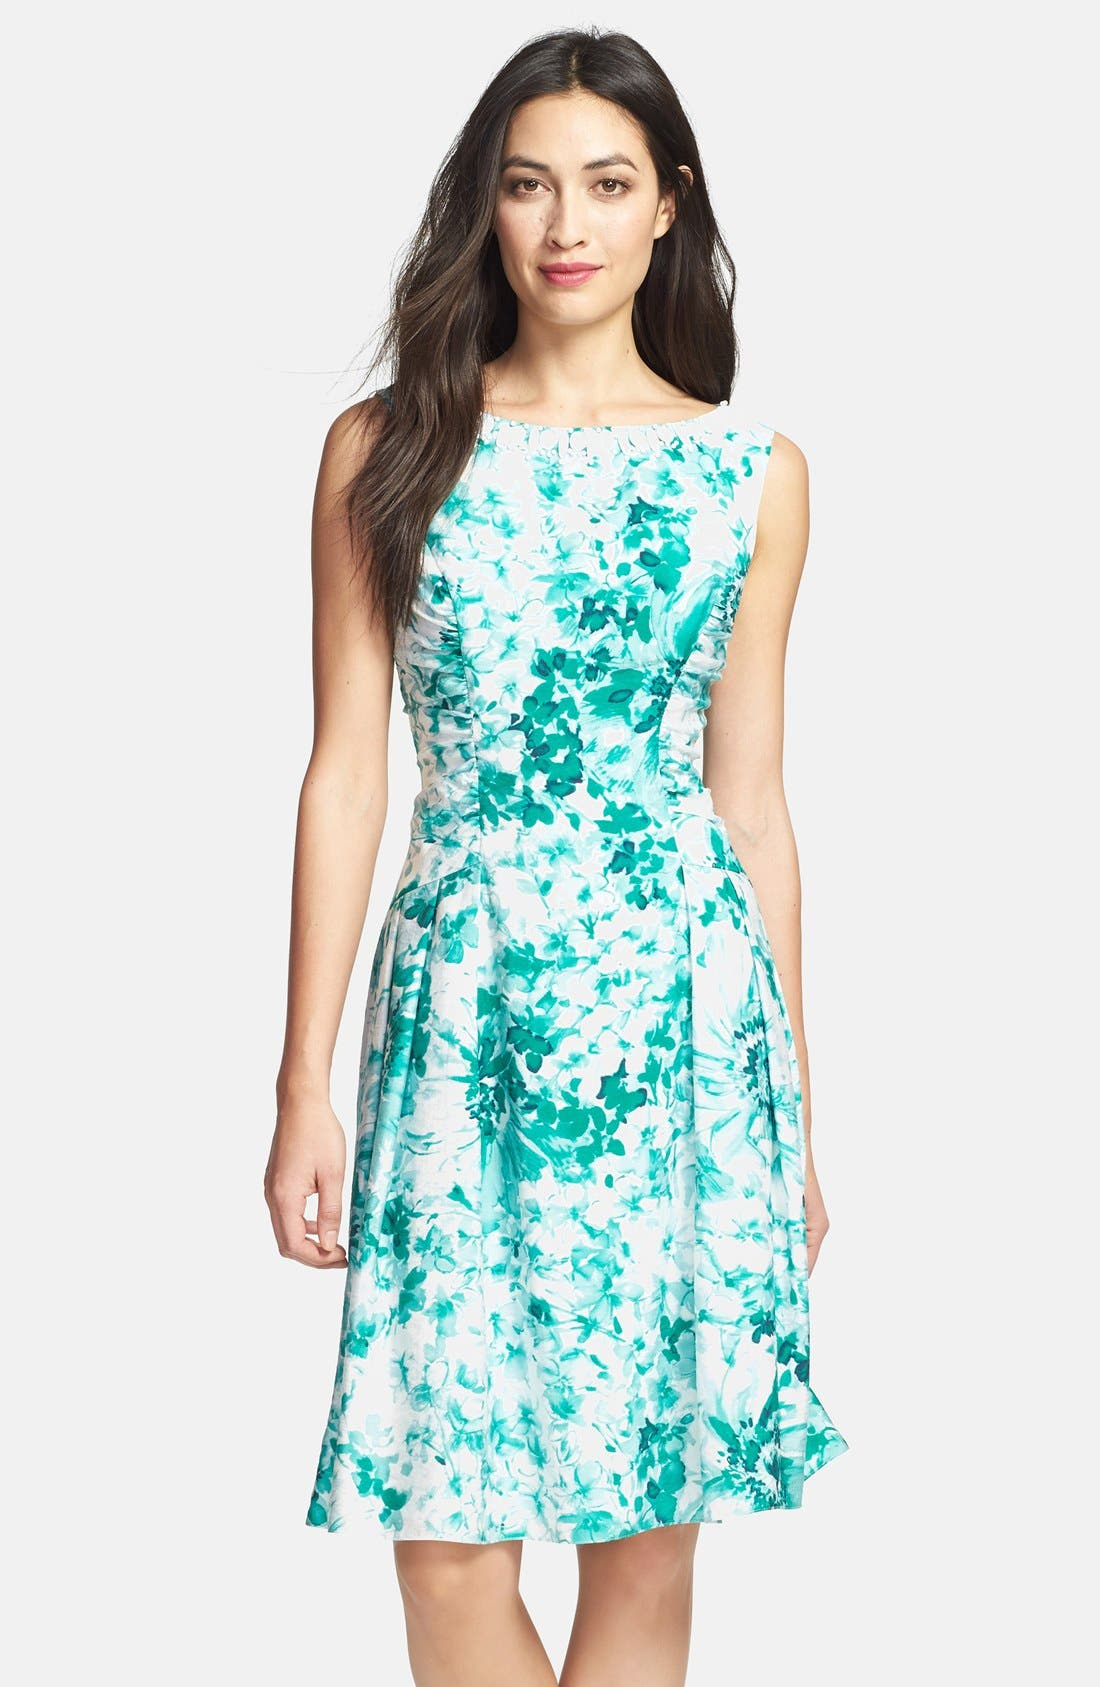 Main Image - Adrianna Papell Beaded Neck Floral Print Fit & Flare Dress